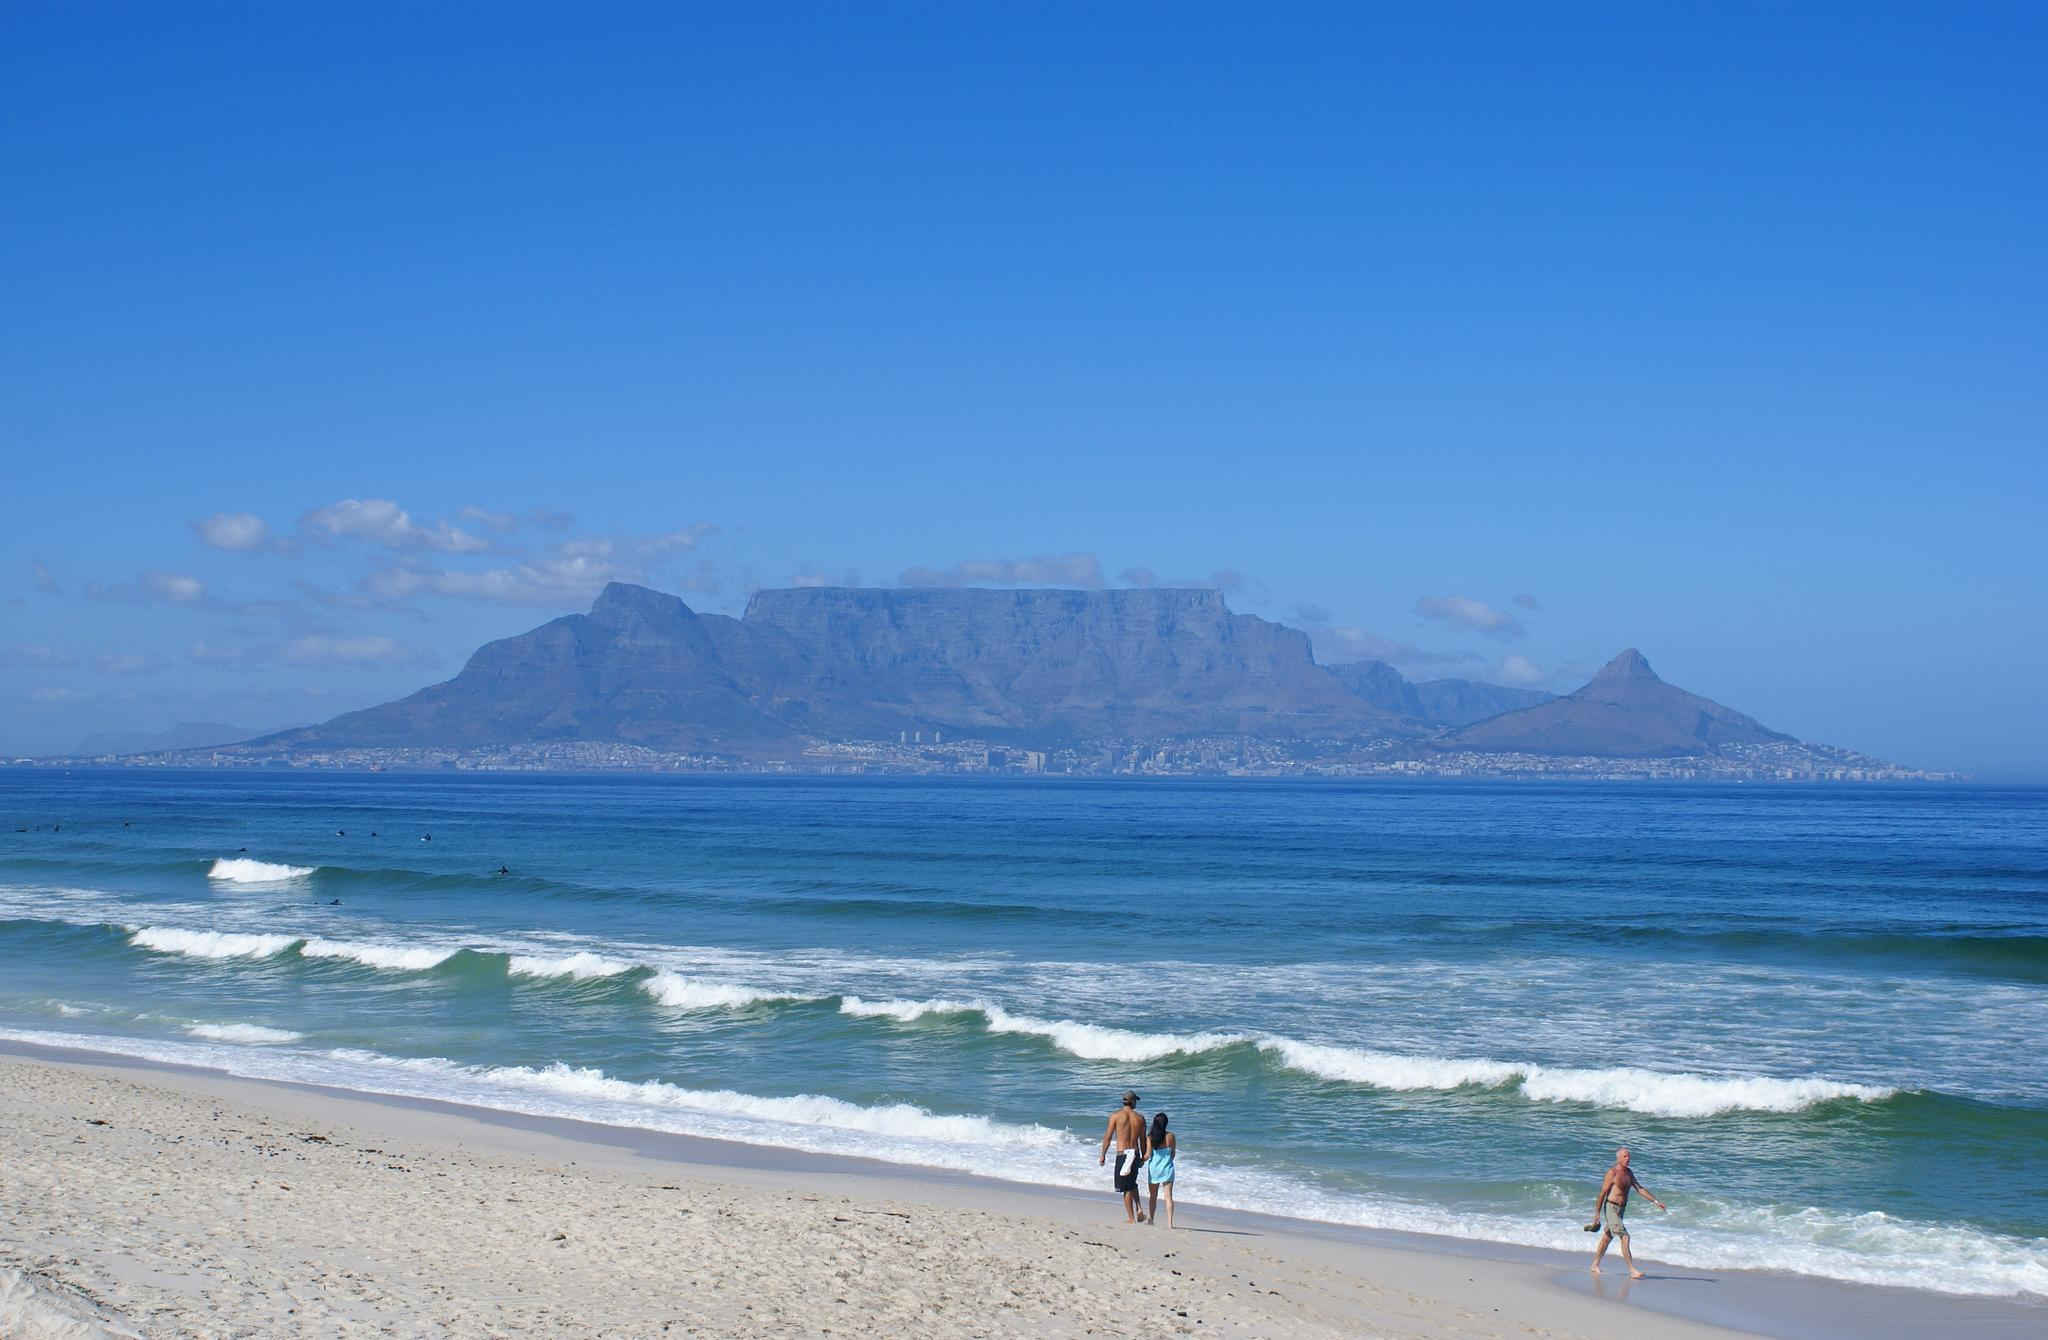 Table Mountain - Wikipedia, the free encyclopedia